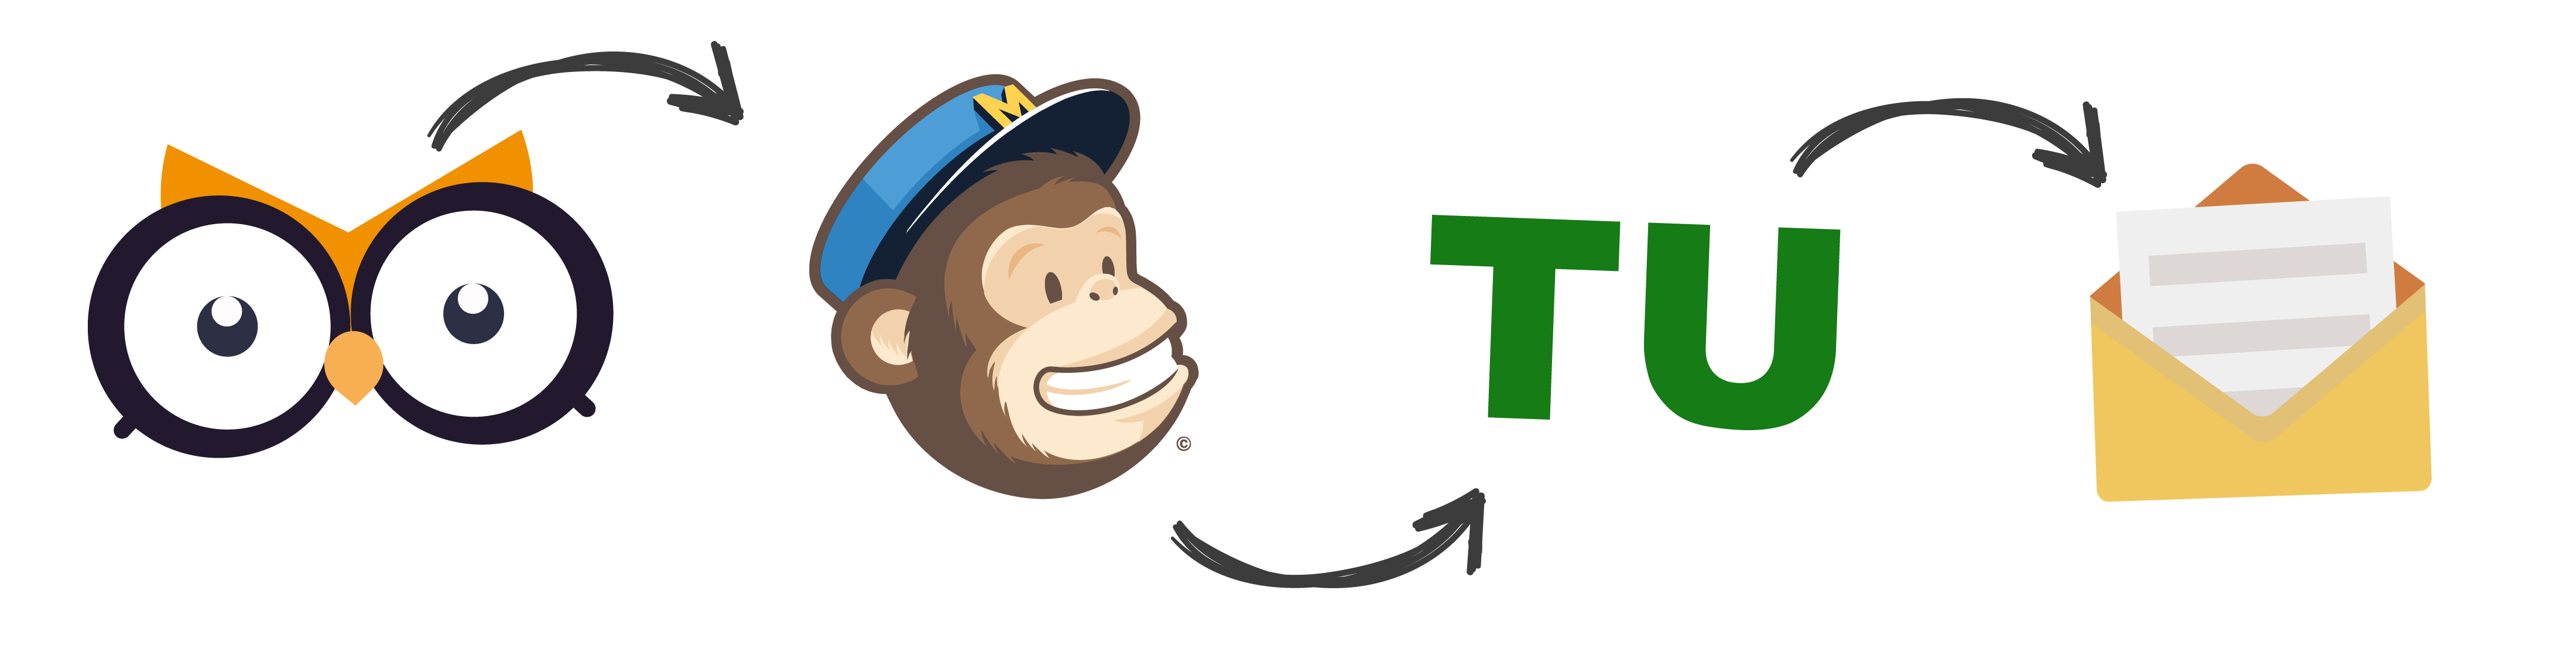 iq-set-newsletter-mailchimp-2